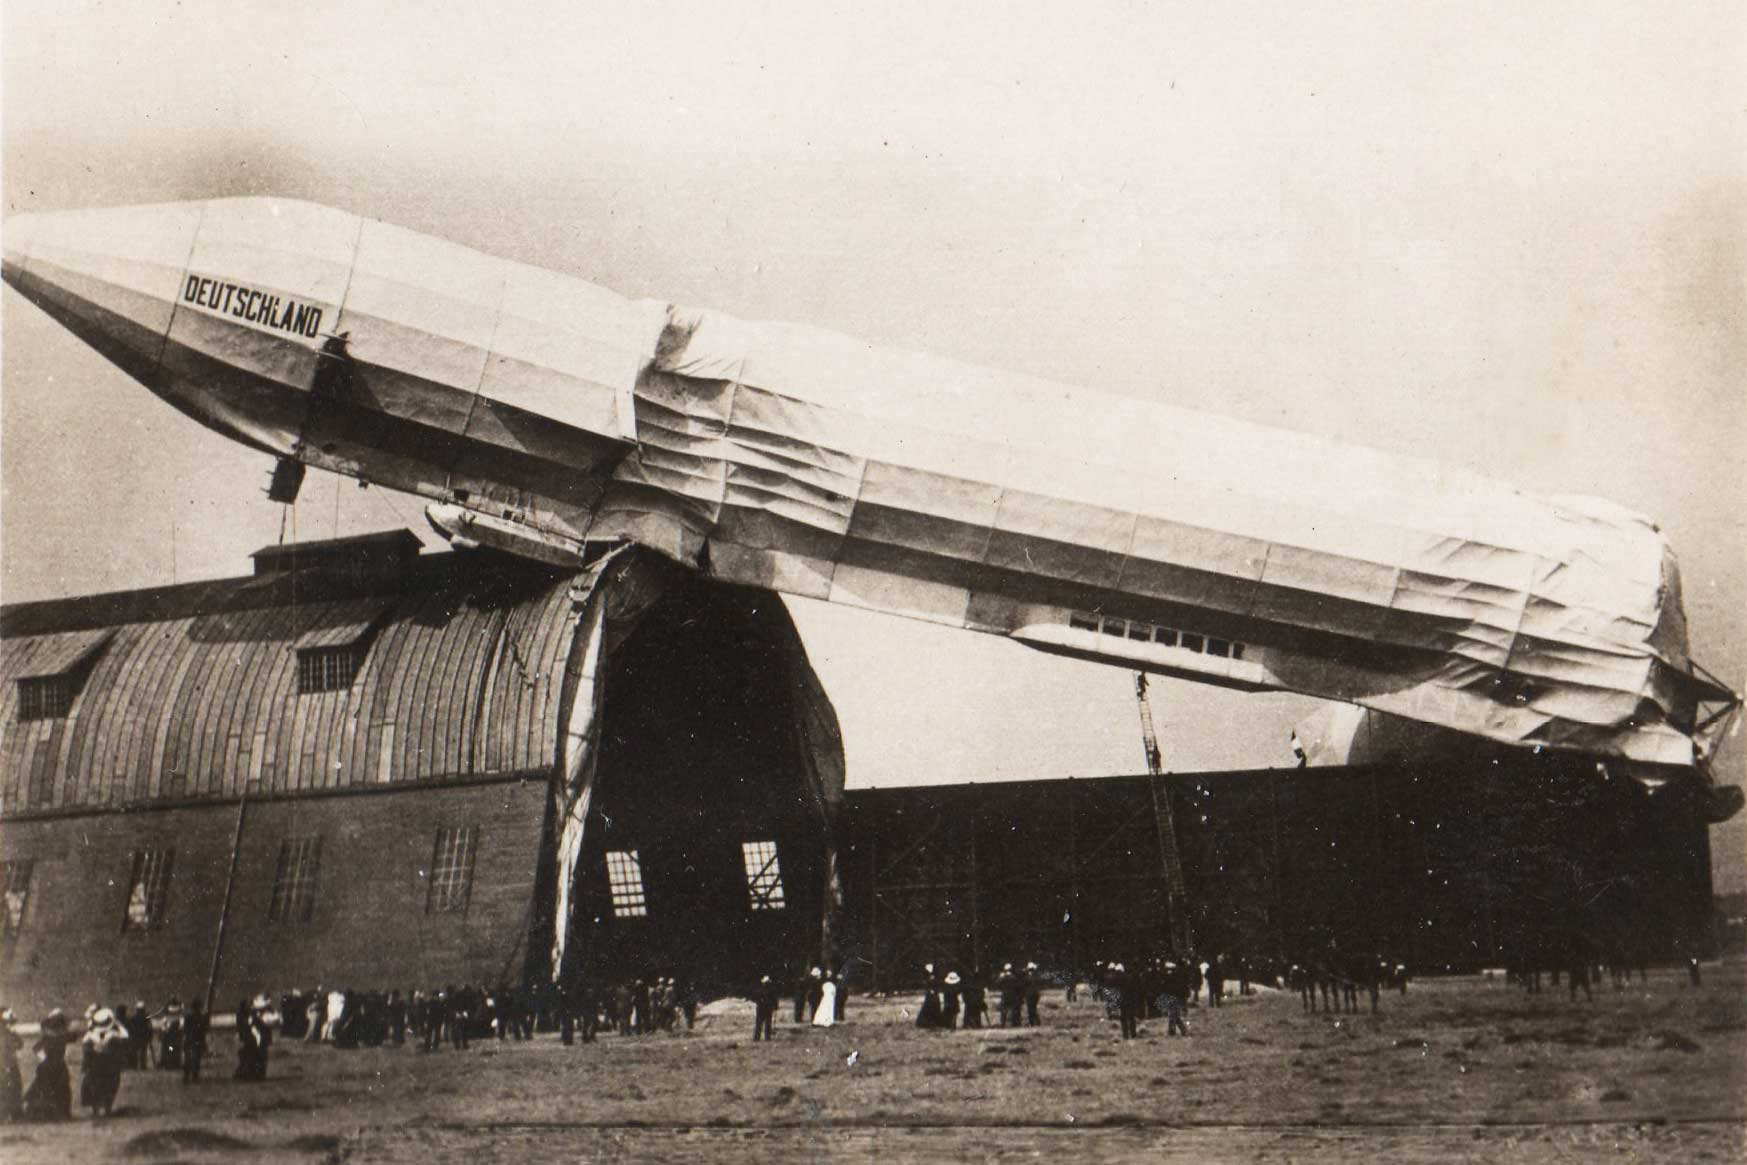 LZ-8 Deutschland Accident - May 16, 1911